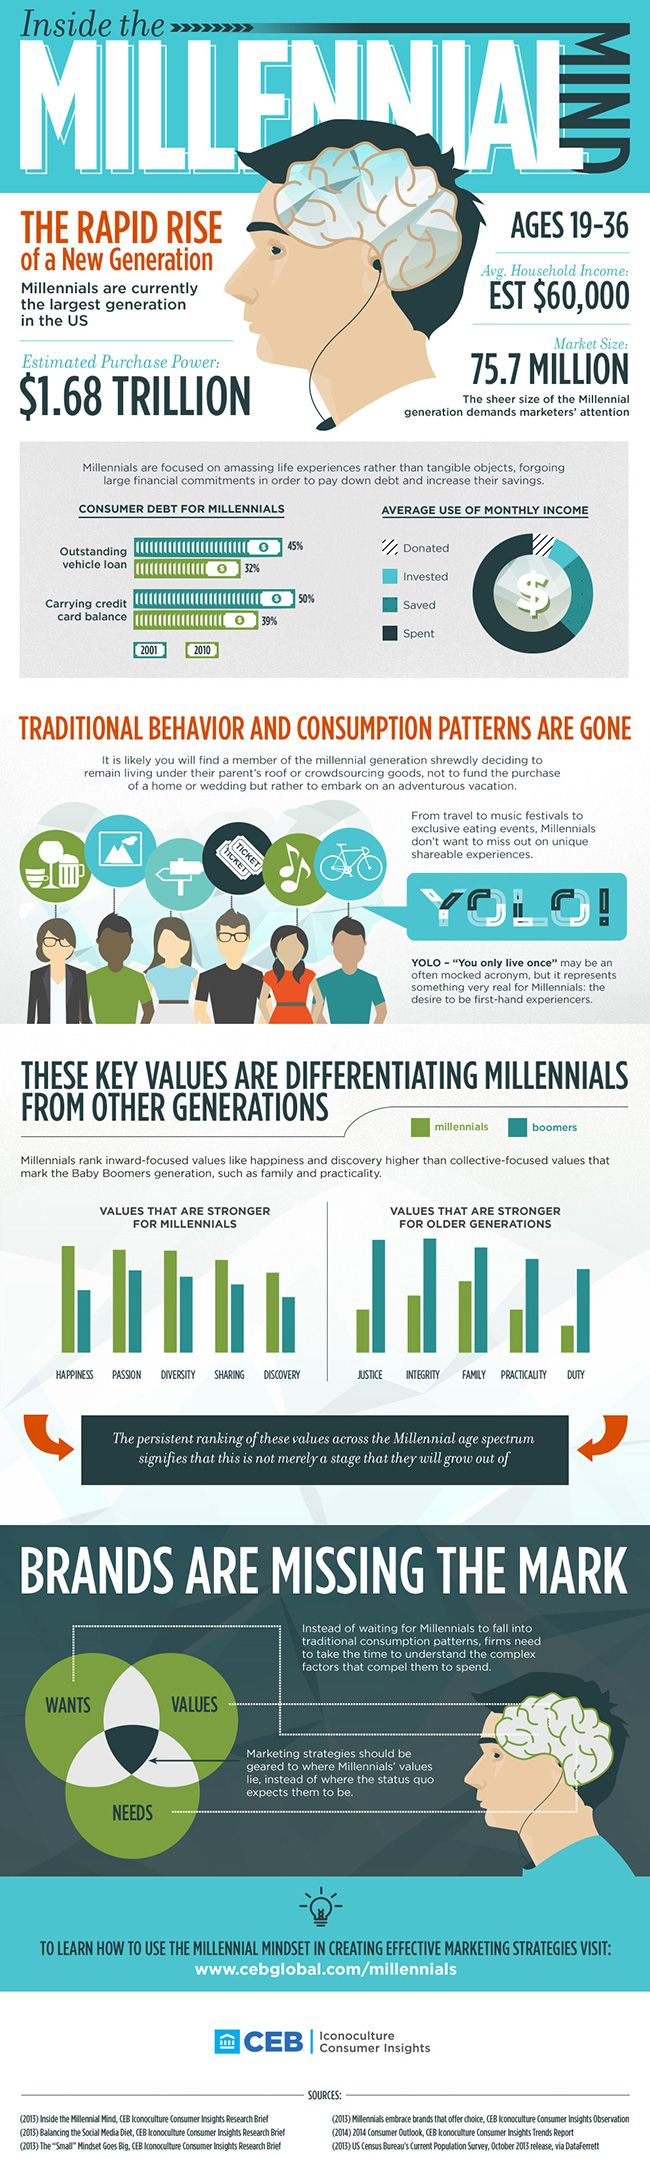 CEB Iconoculture | Inside the Millennial Mind Infographic